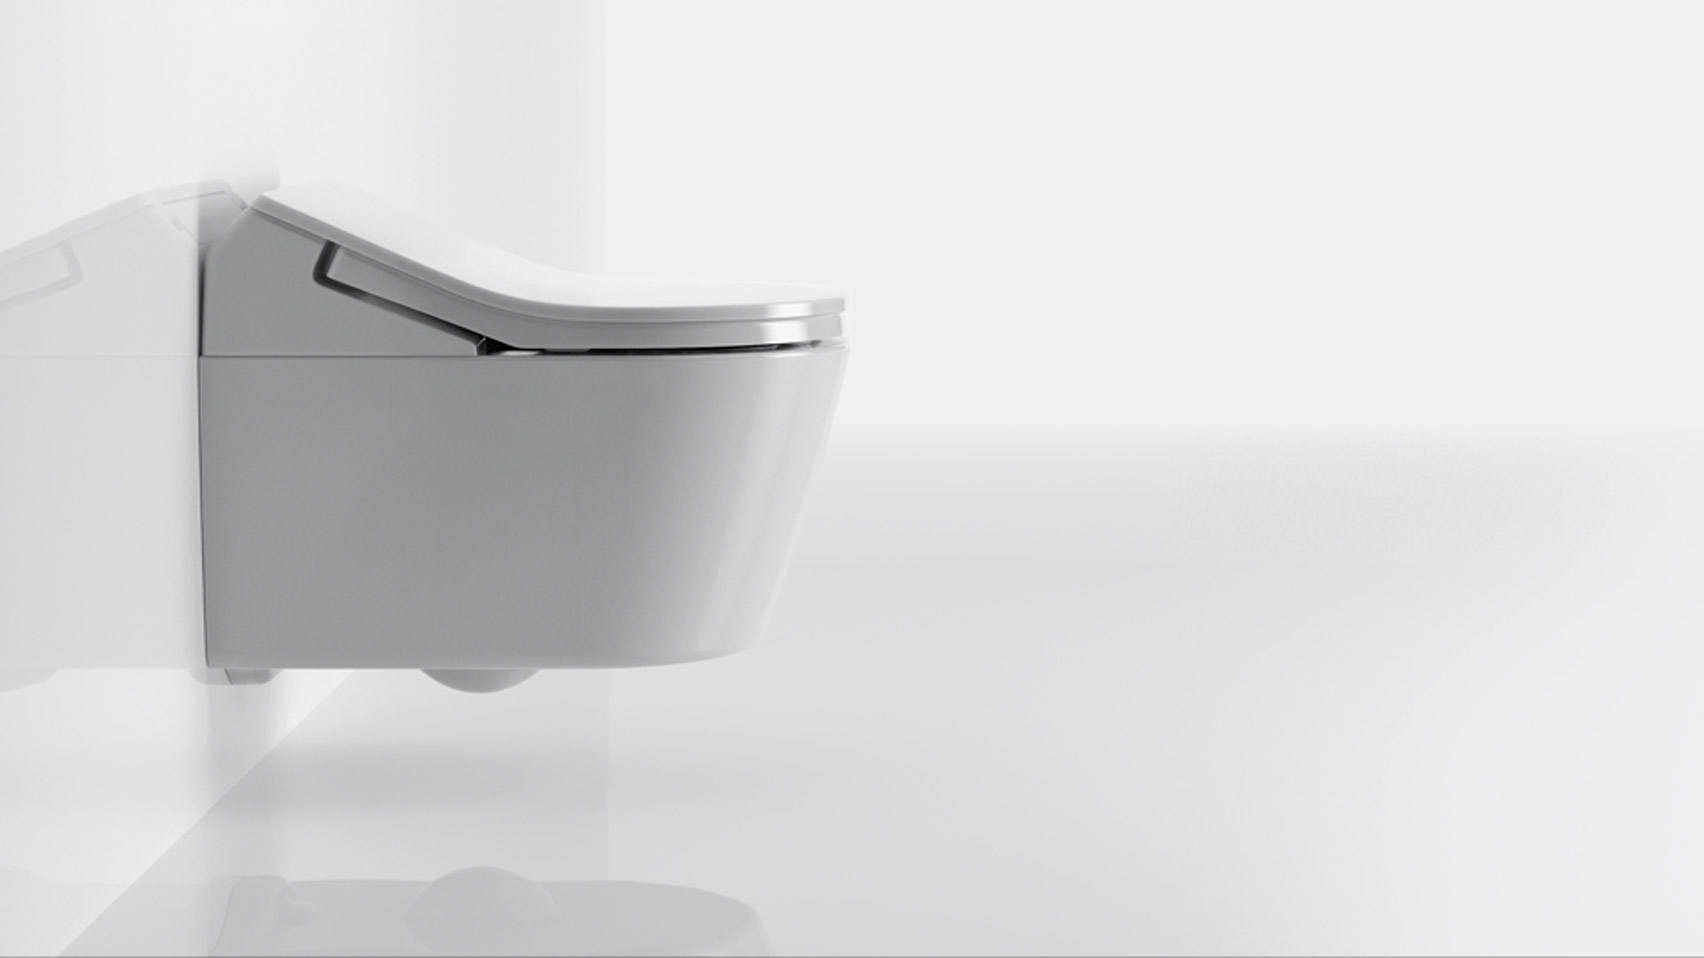 David Morley to discuss Toto bathrooms at Clerkenwell Design Week